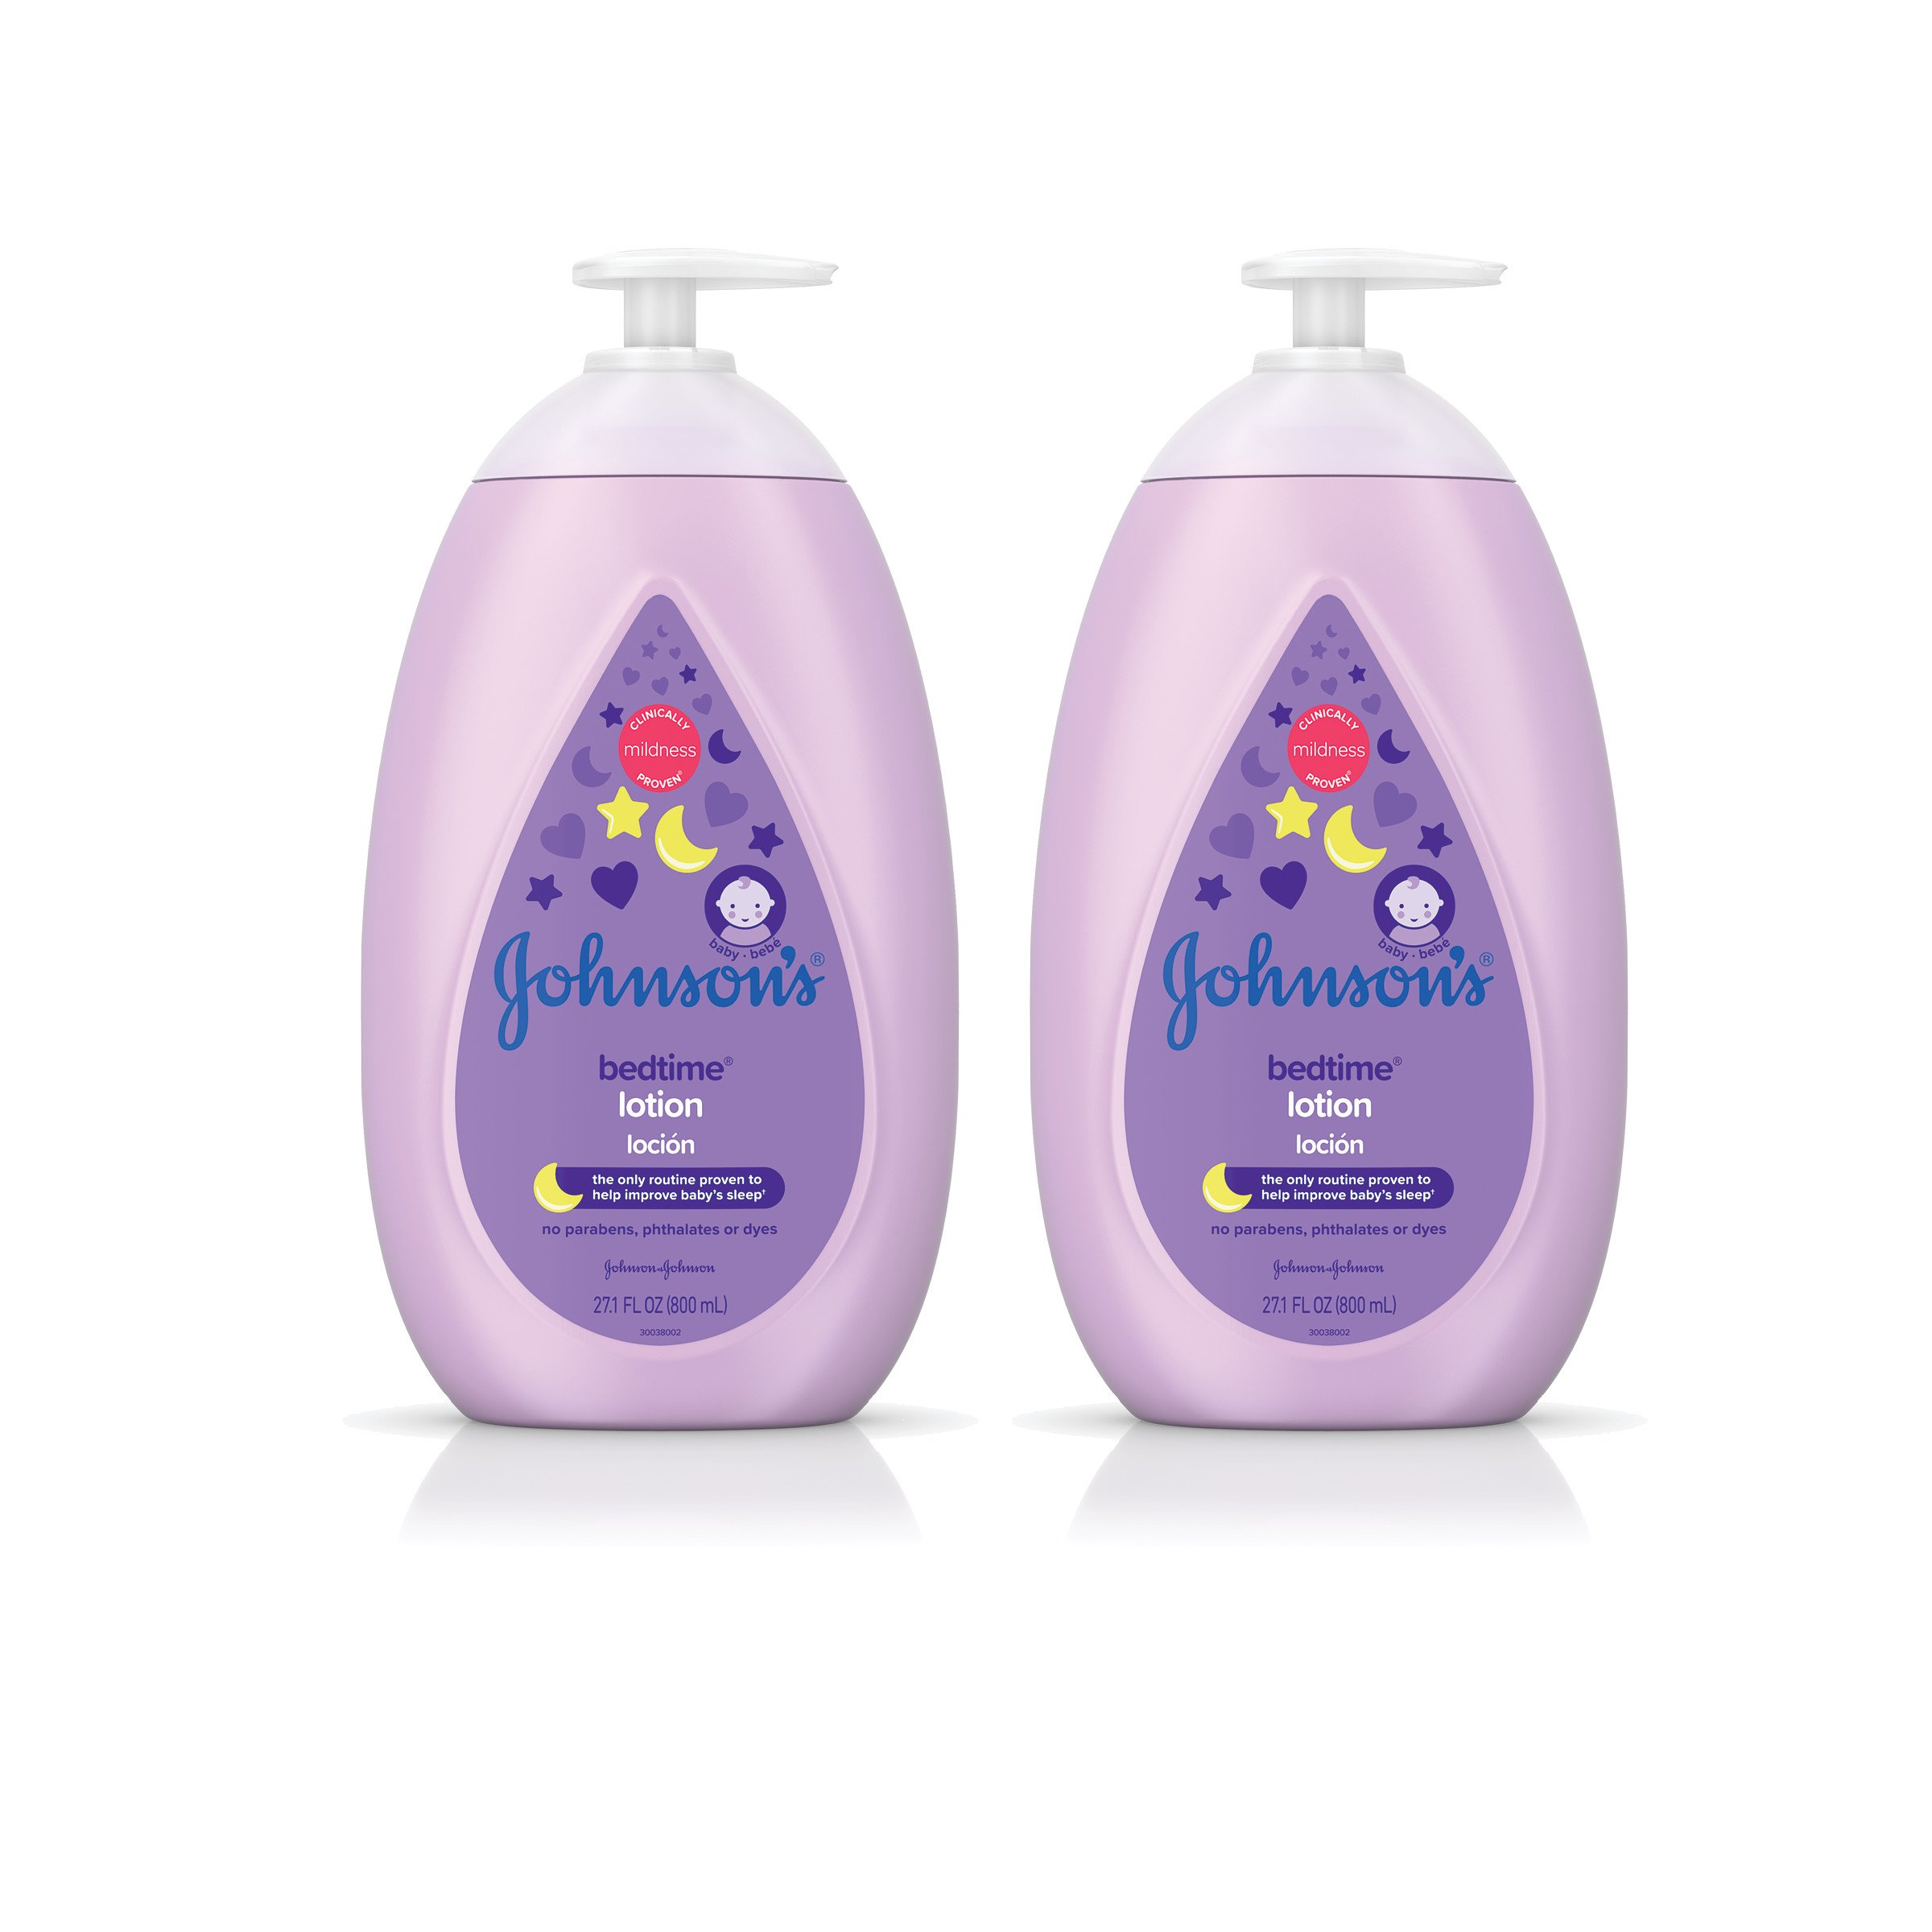 Johnson's Calming Bedtime Baby Lotion, Hypoallergenic and Paraben Free, Twin-Pack, 2X 27.1 fl. oz